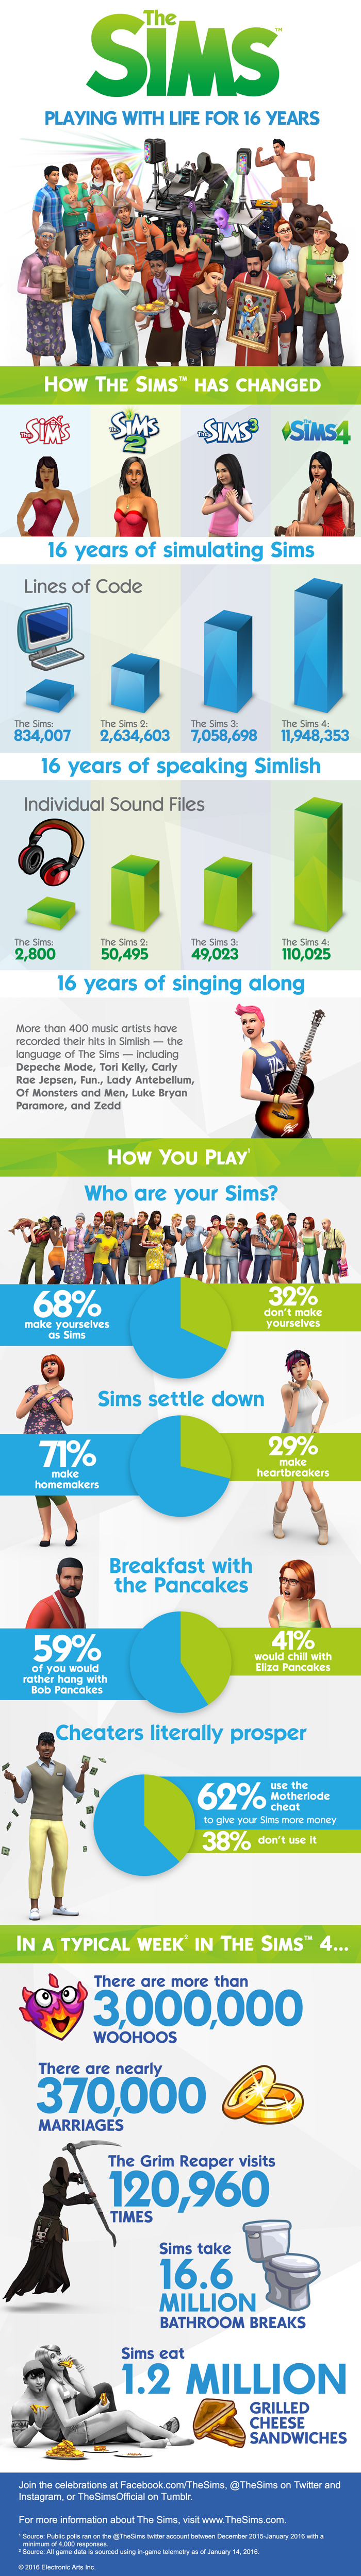 TS4_16th_Anniversary_infographic_final